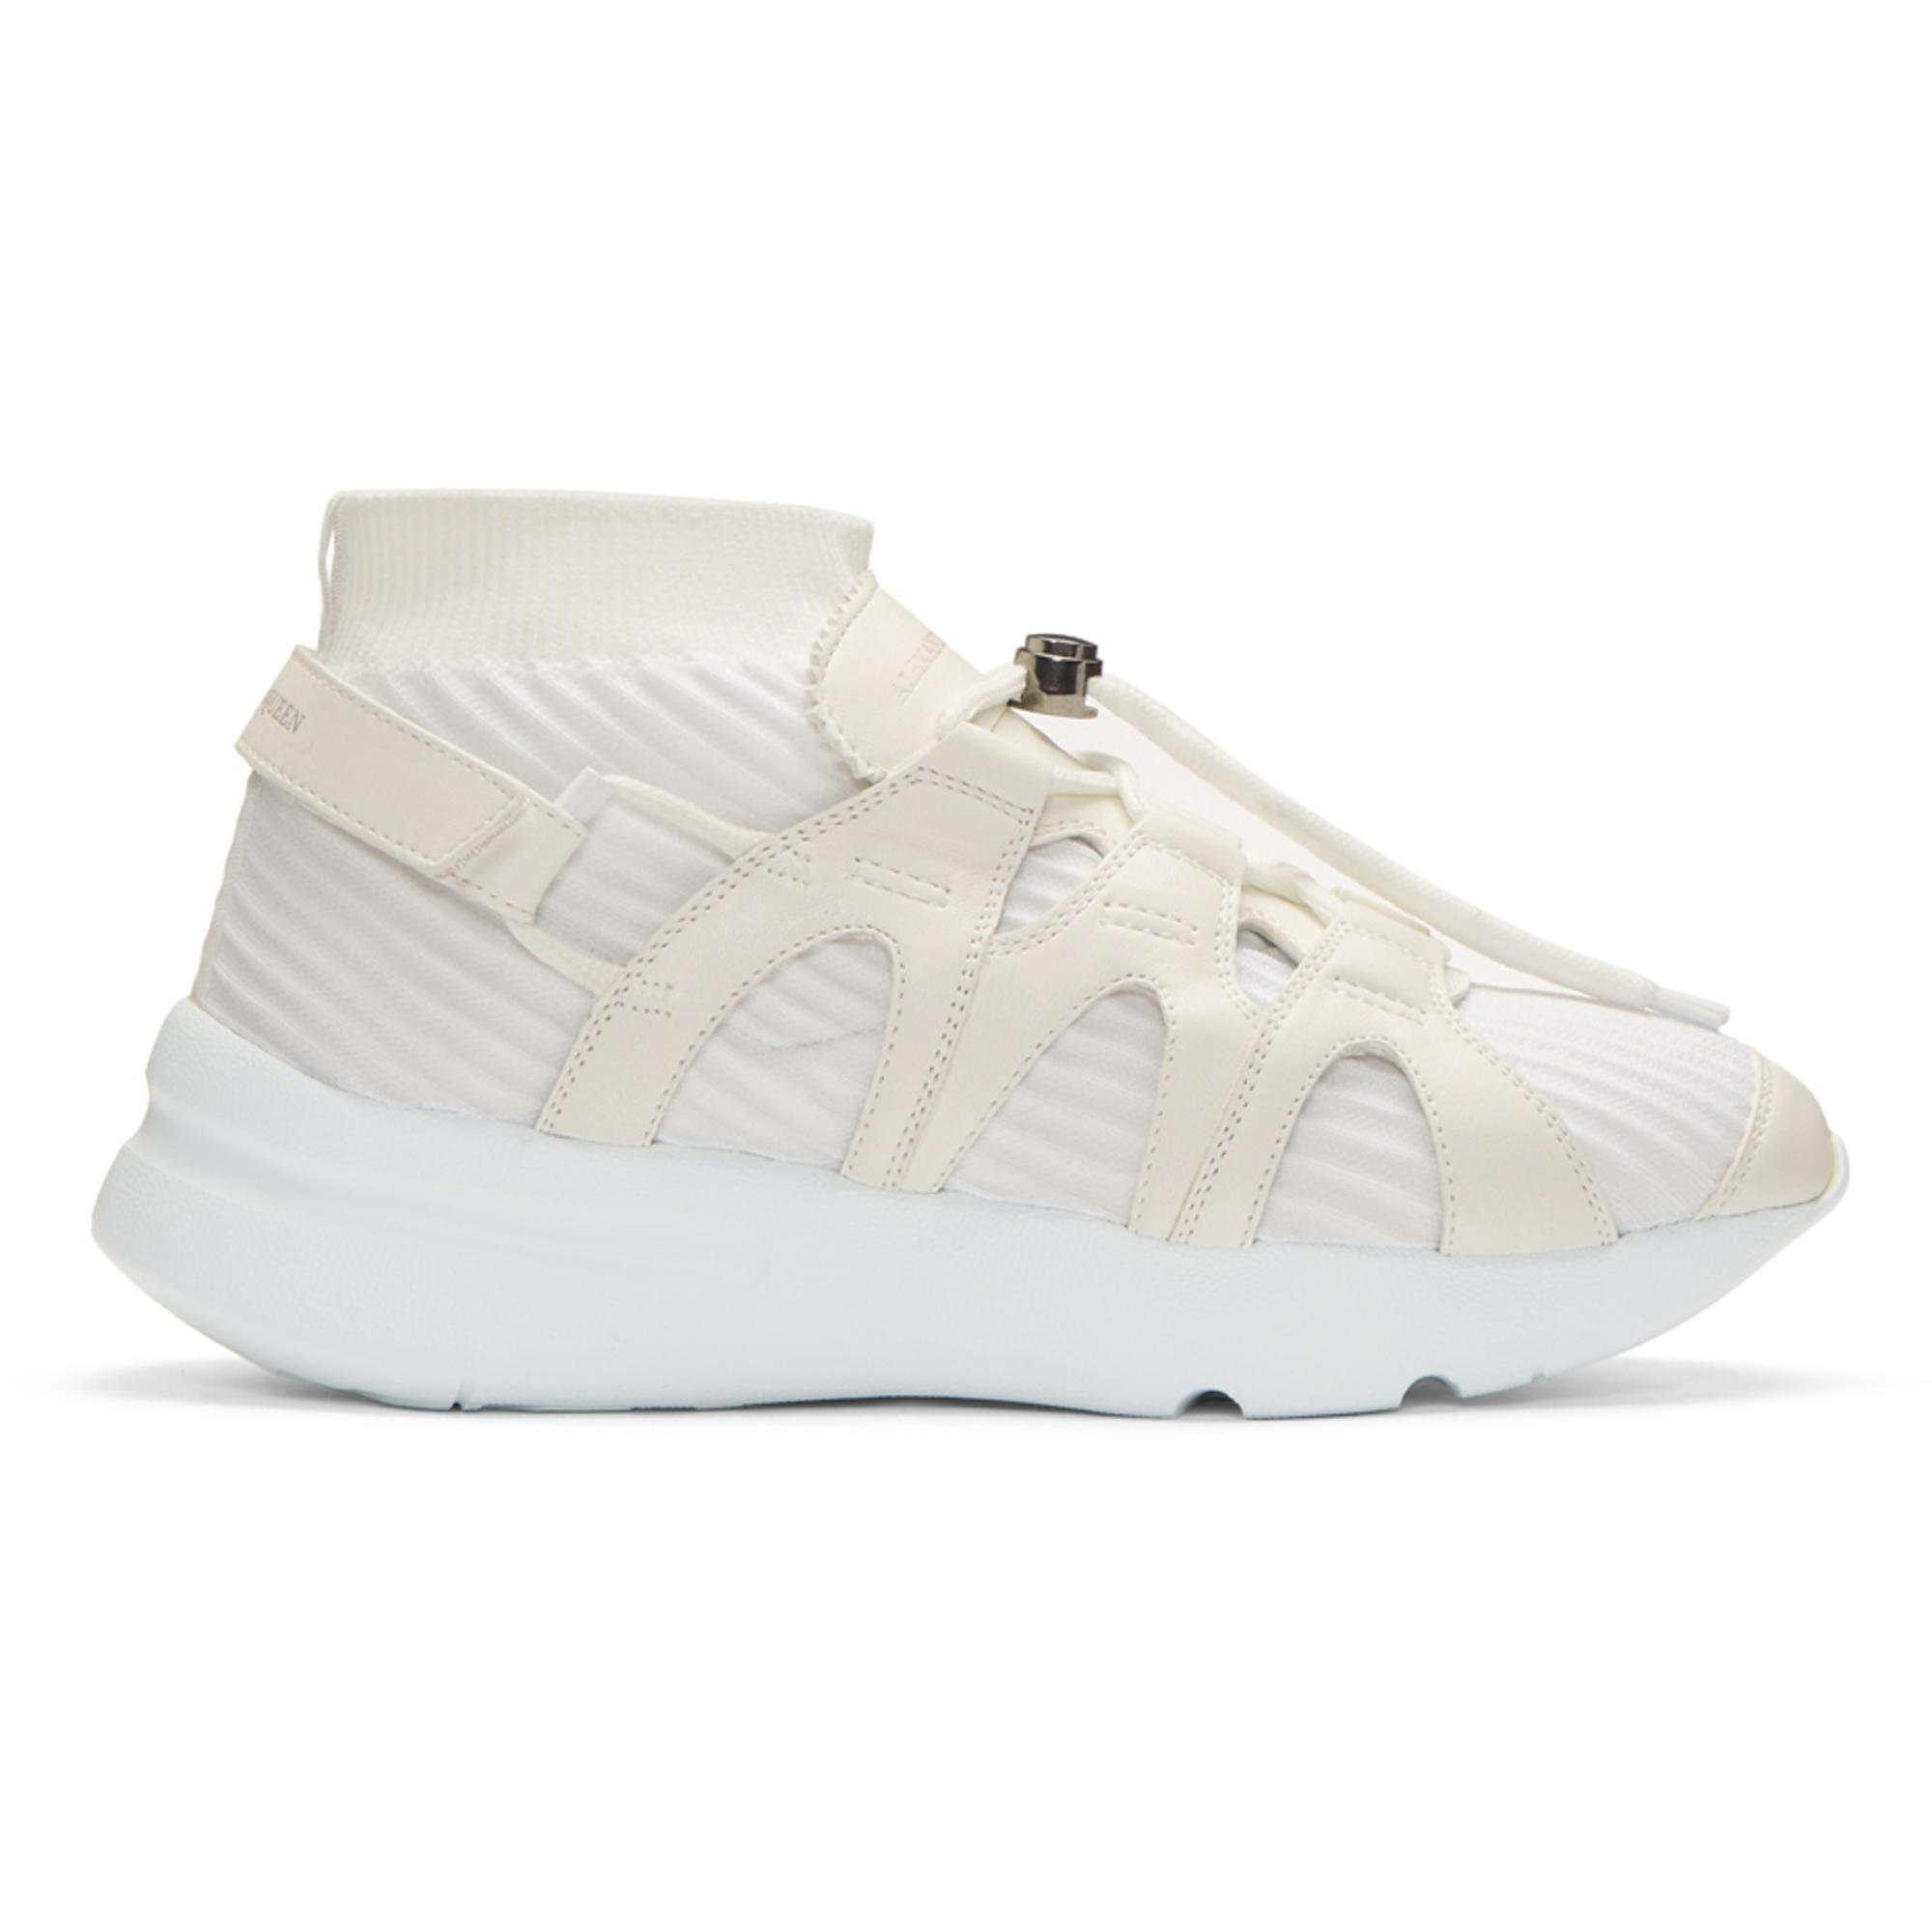 Alexander McQueen White Knit Sock Sneakers